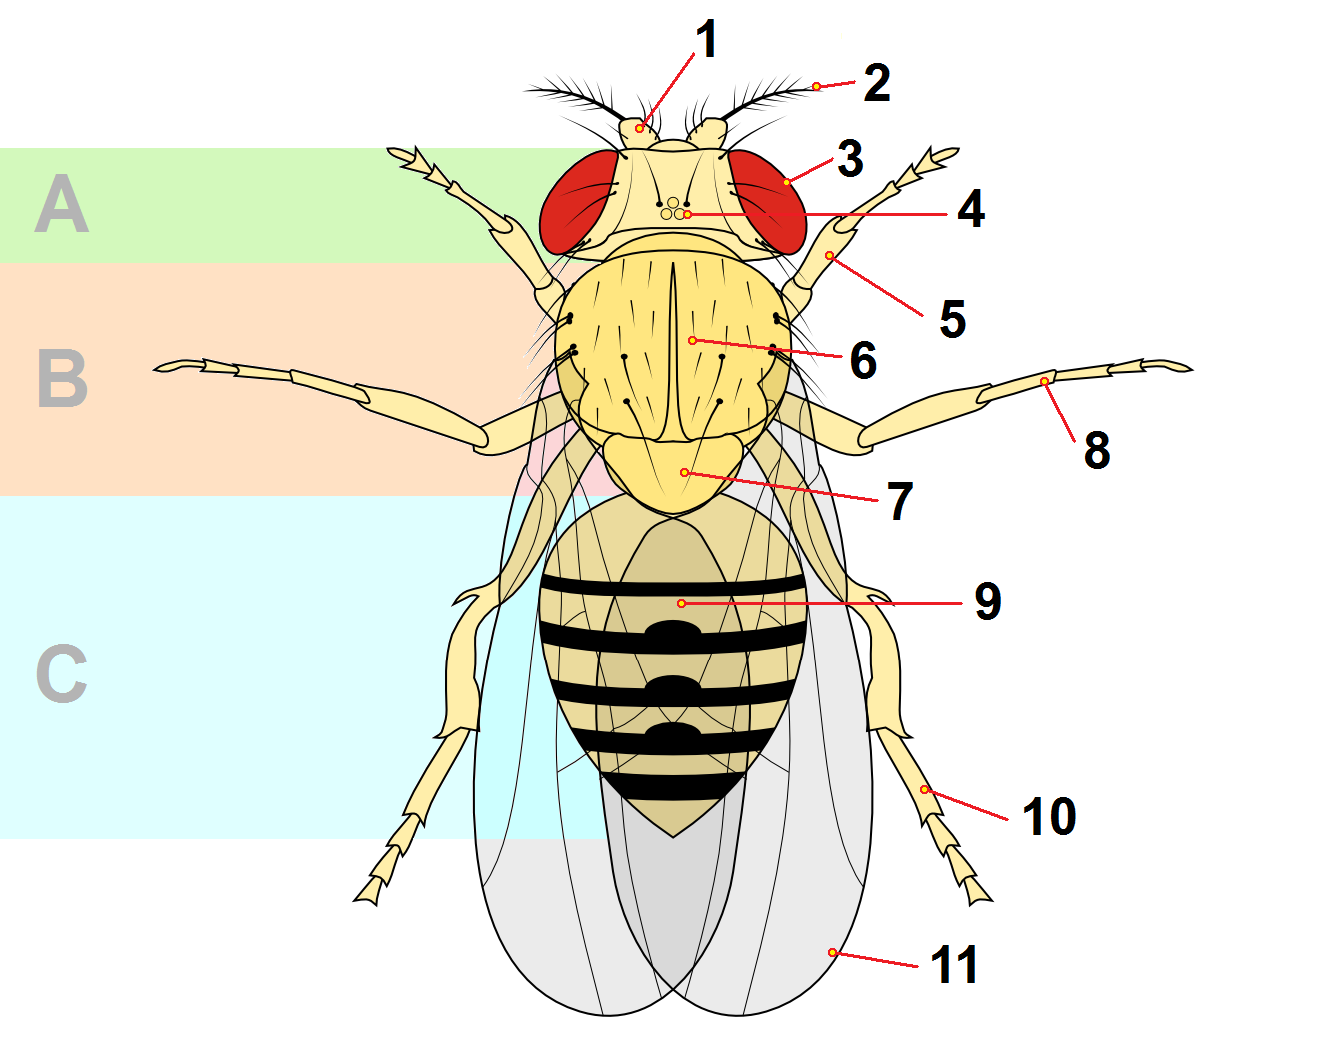 File:Drosophyla anatomy tagged.png - Wikimedia Commons